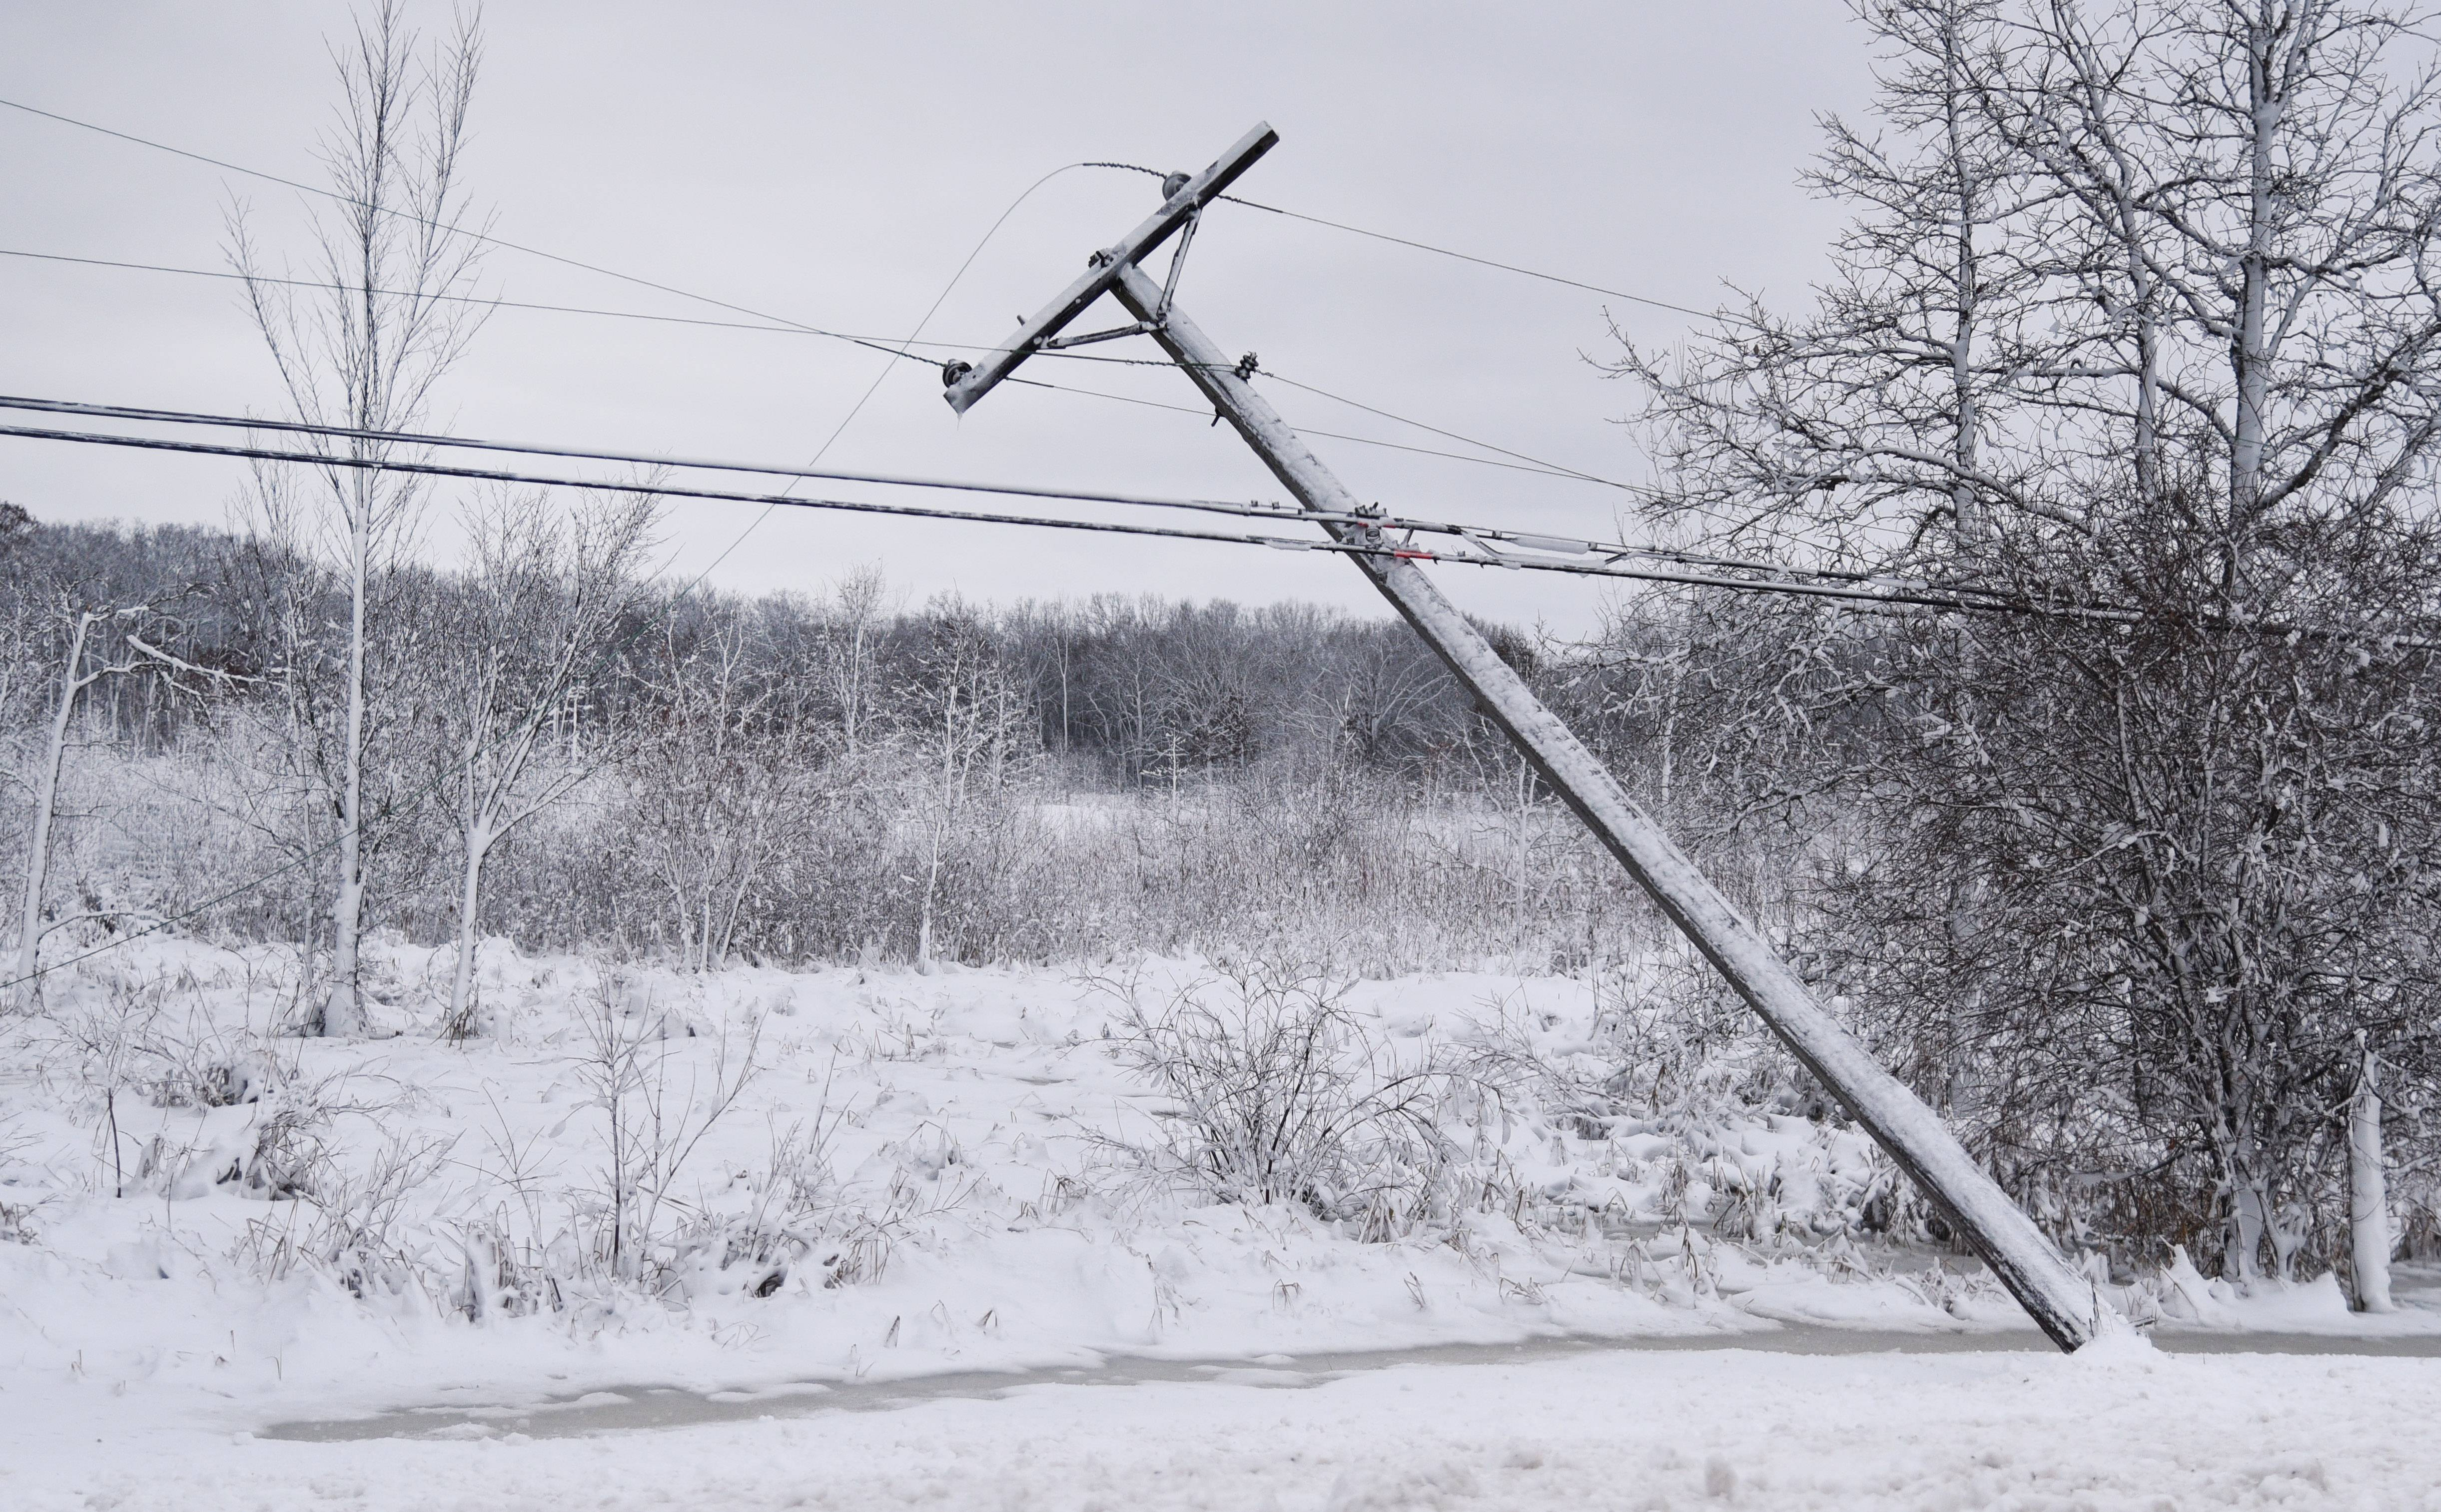 Thousands of people remain without electricity days after an ice and snowstorm hit the region, damaging power lines and poles like this one along Everett Road just west of Riverwoods Road near Lincolnshire.